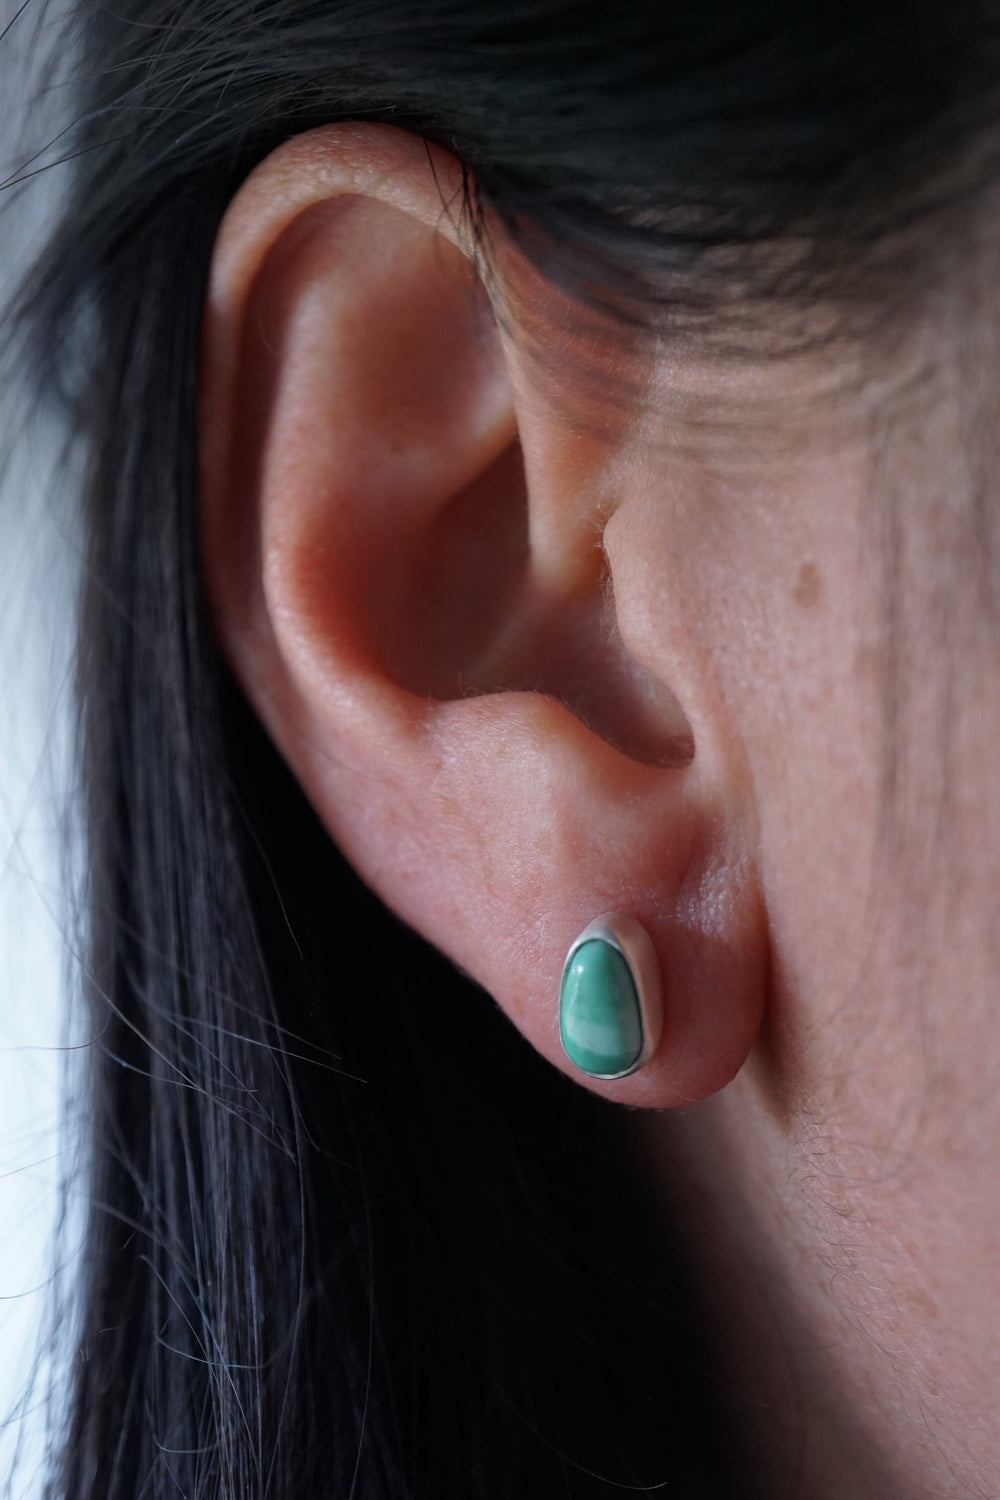 teeny tiny royston turquoise + silver stud earring pair